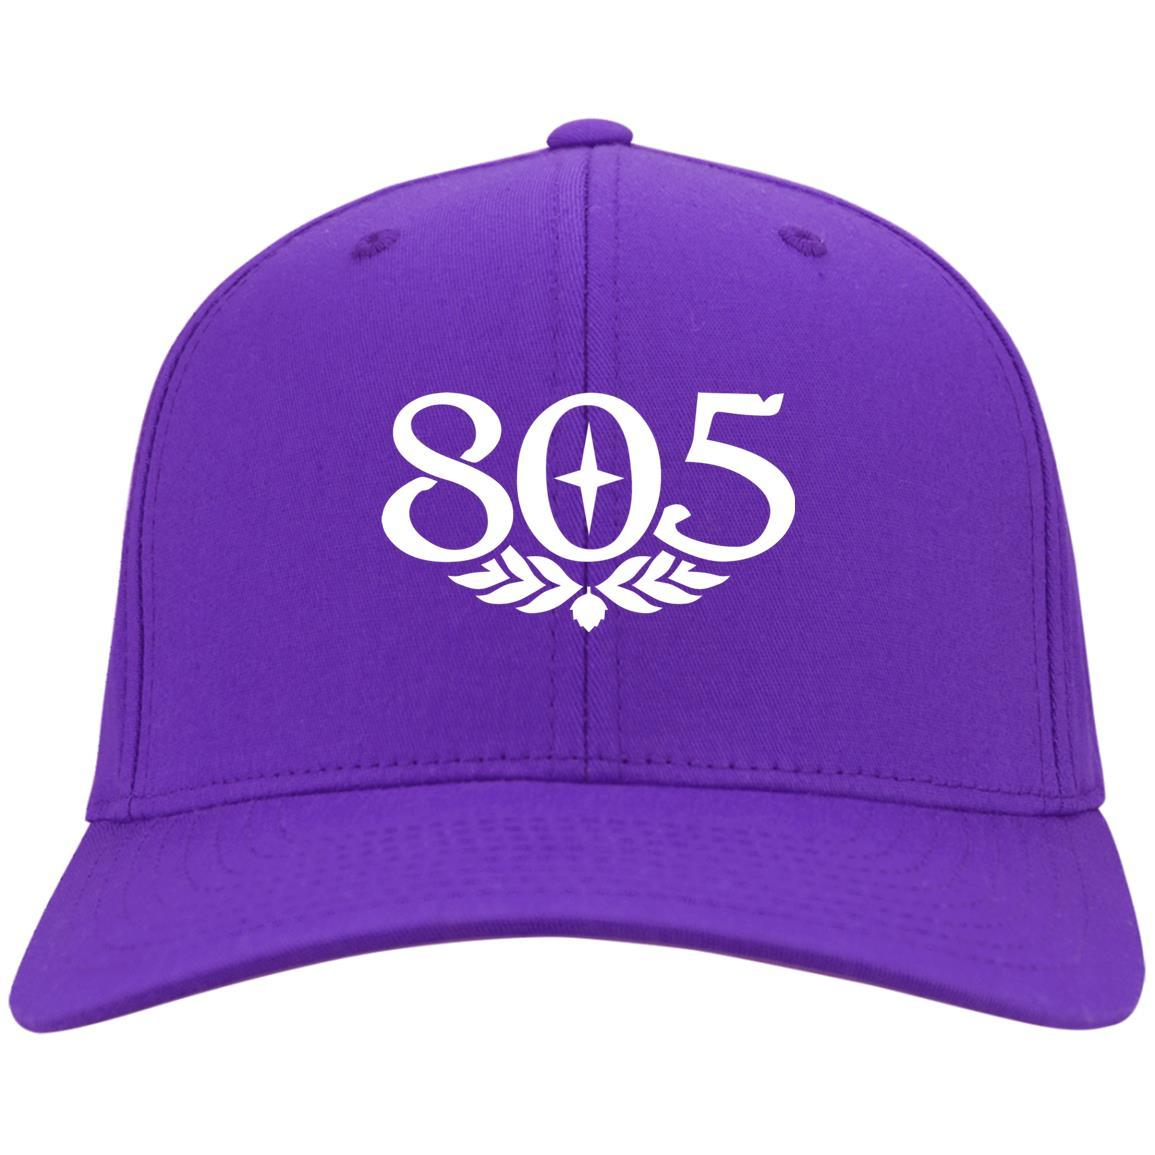 805 Beer - Port & Co. Twill Cap Purple